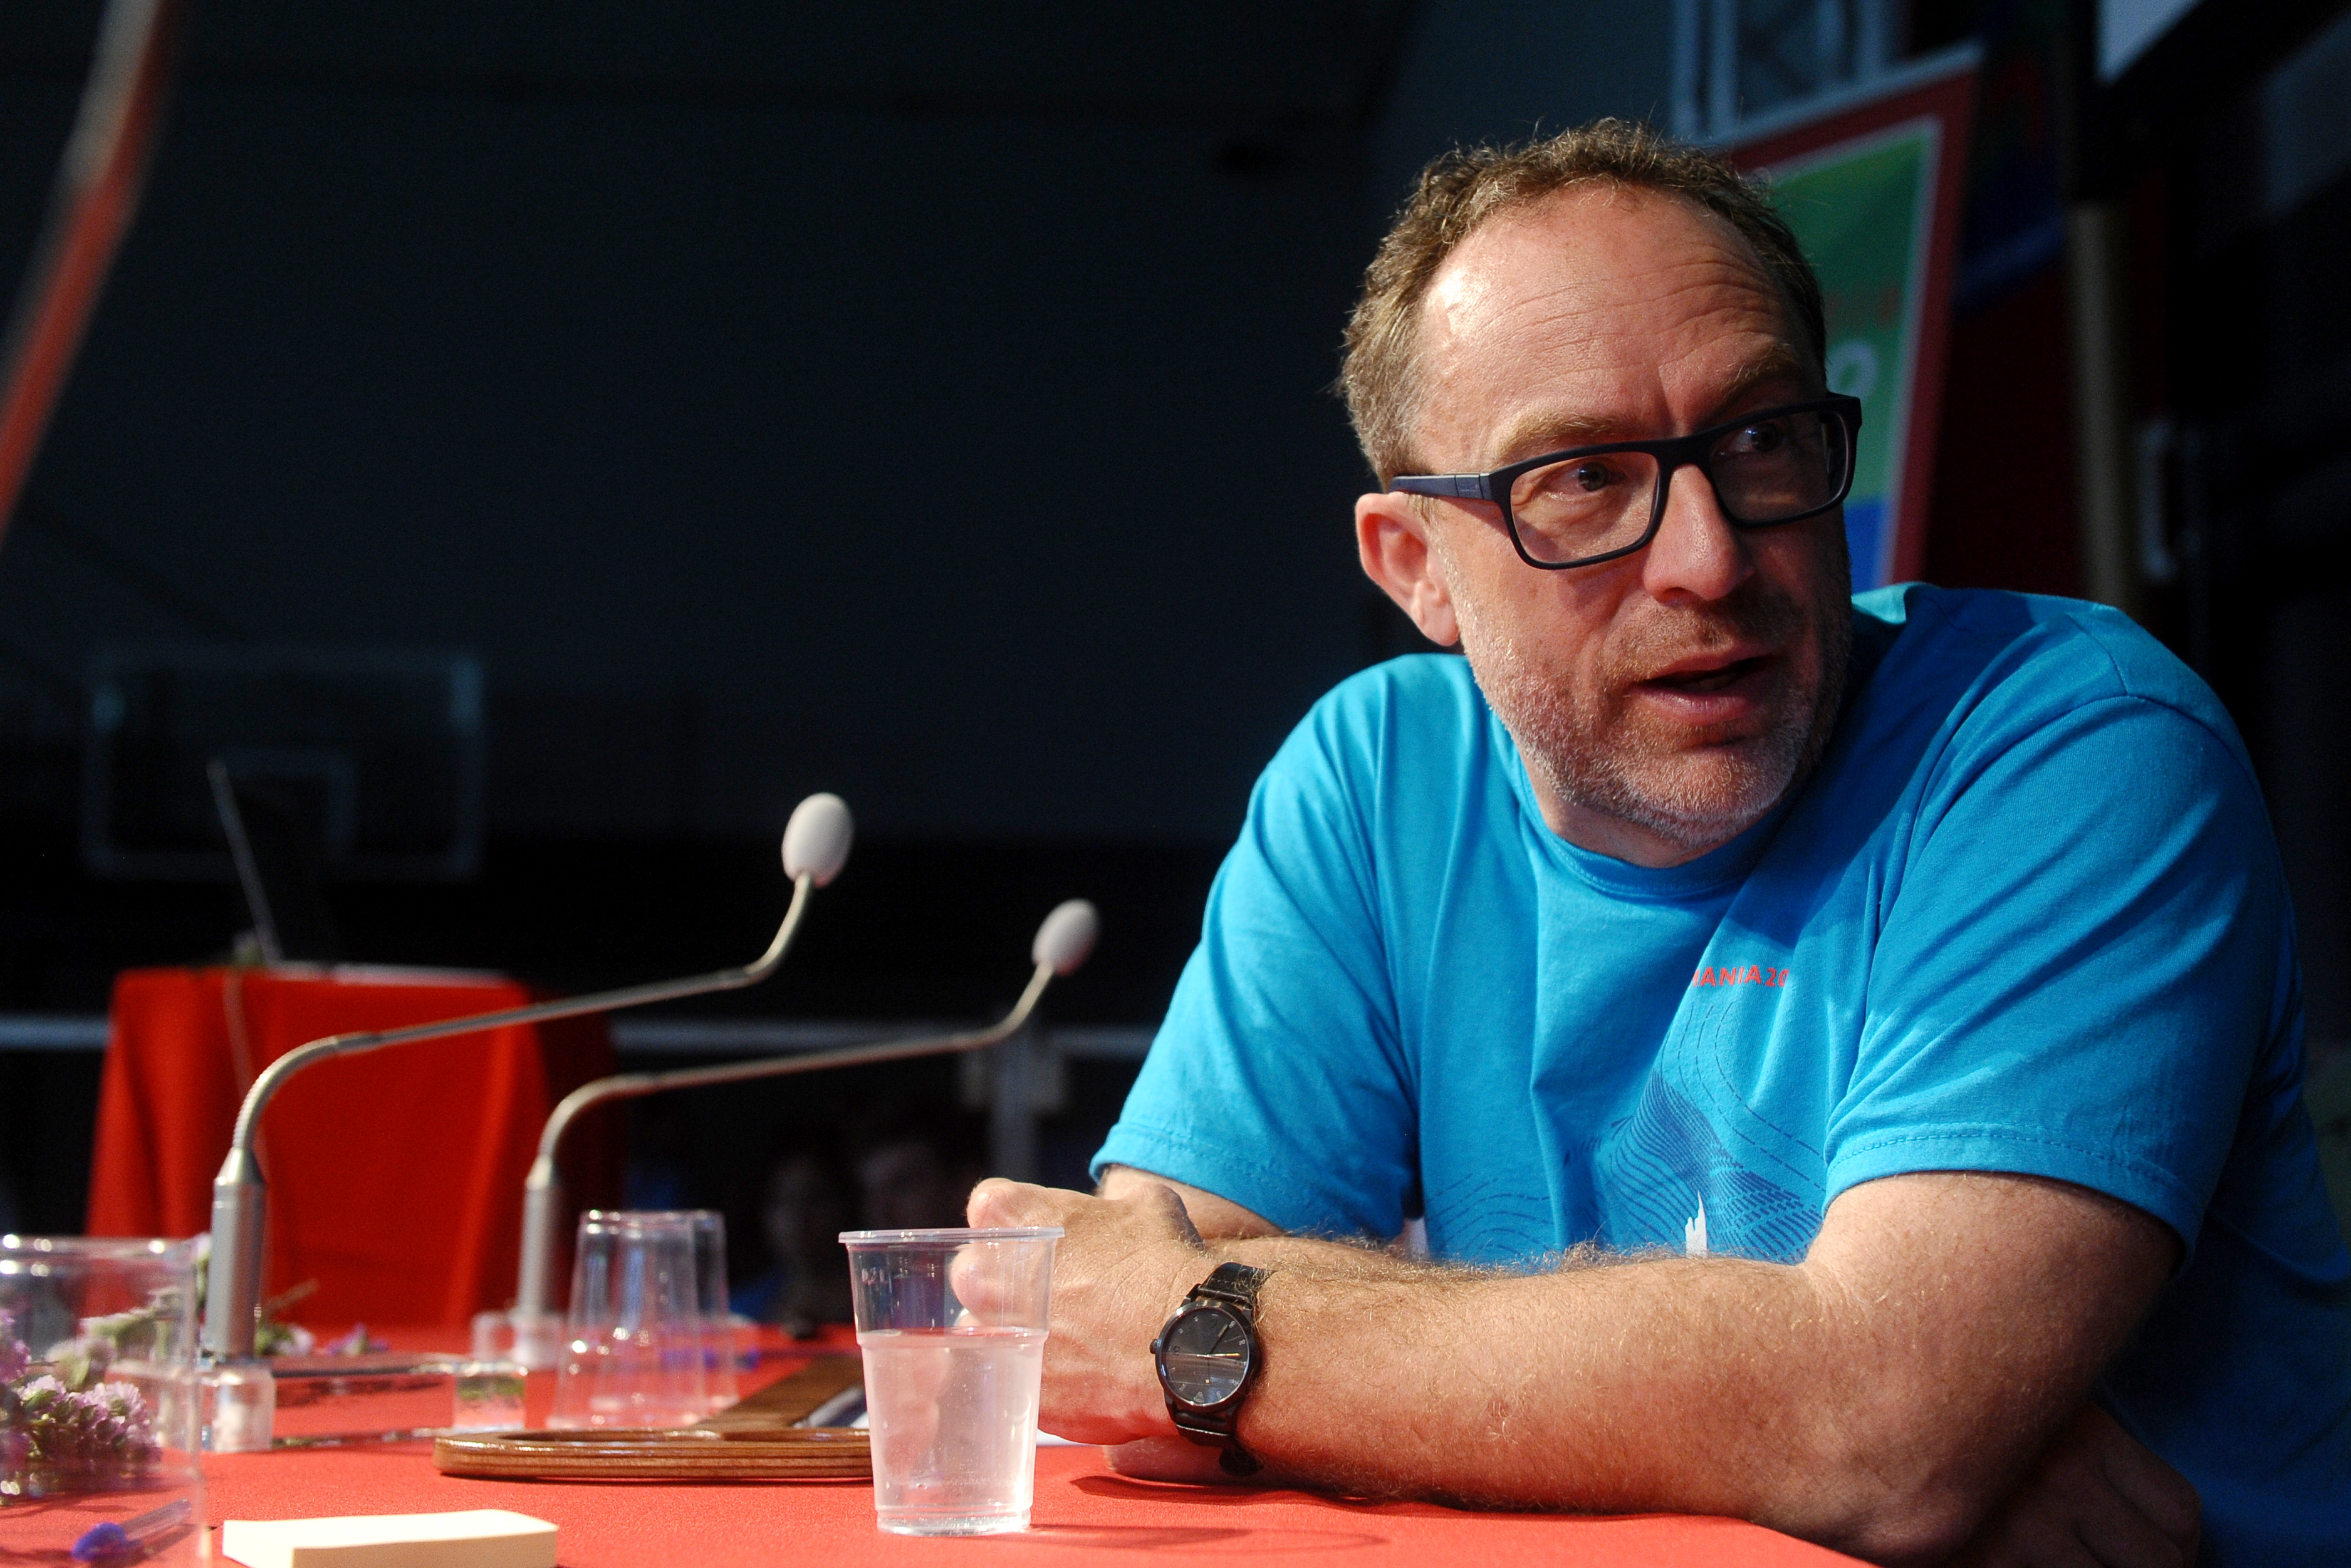 files/images/wikimania_2016_-_press_conference_with_jimmy_wales_and_katherine_maher_04.jpg